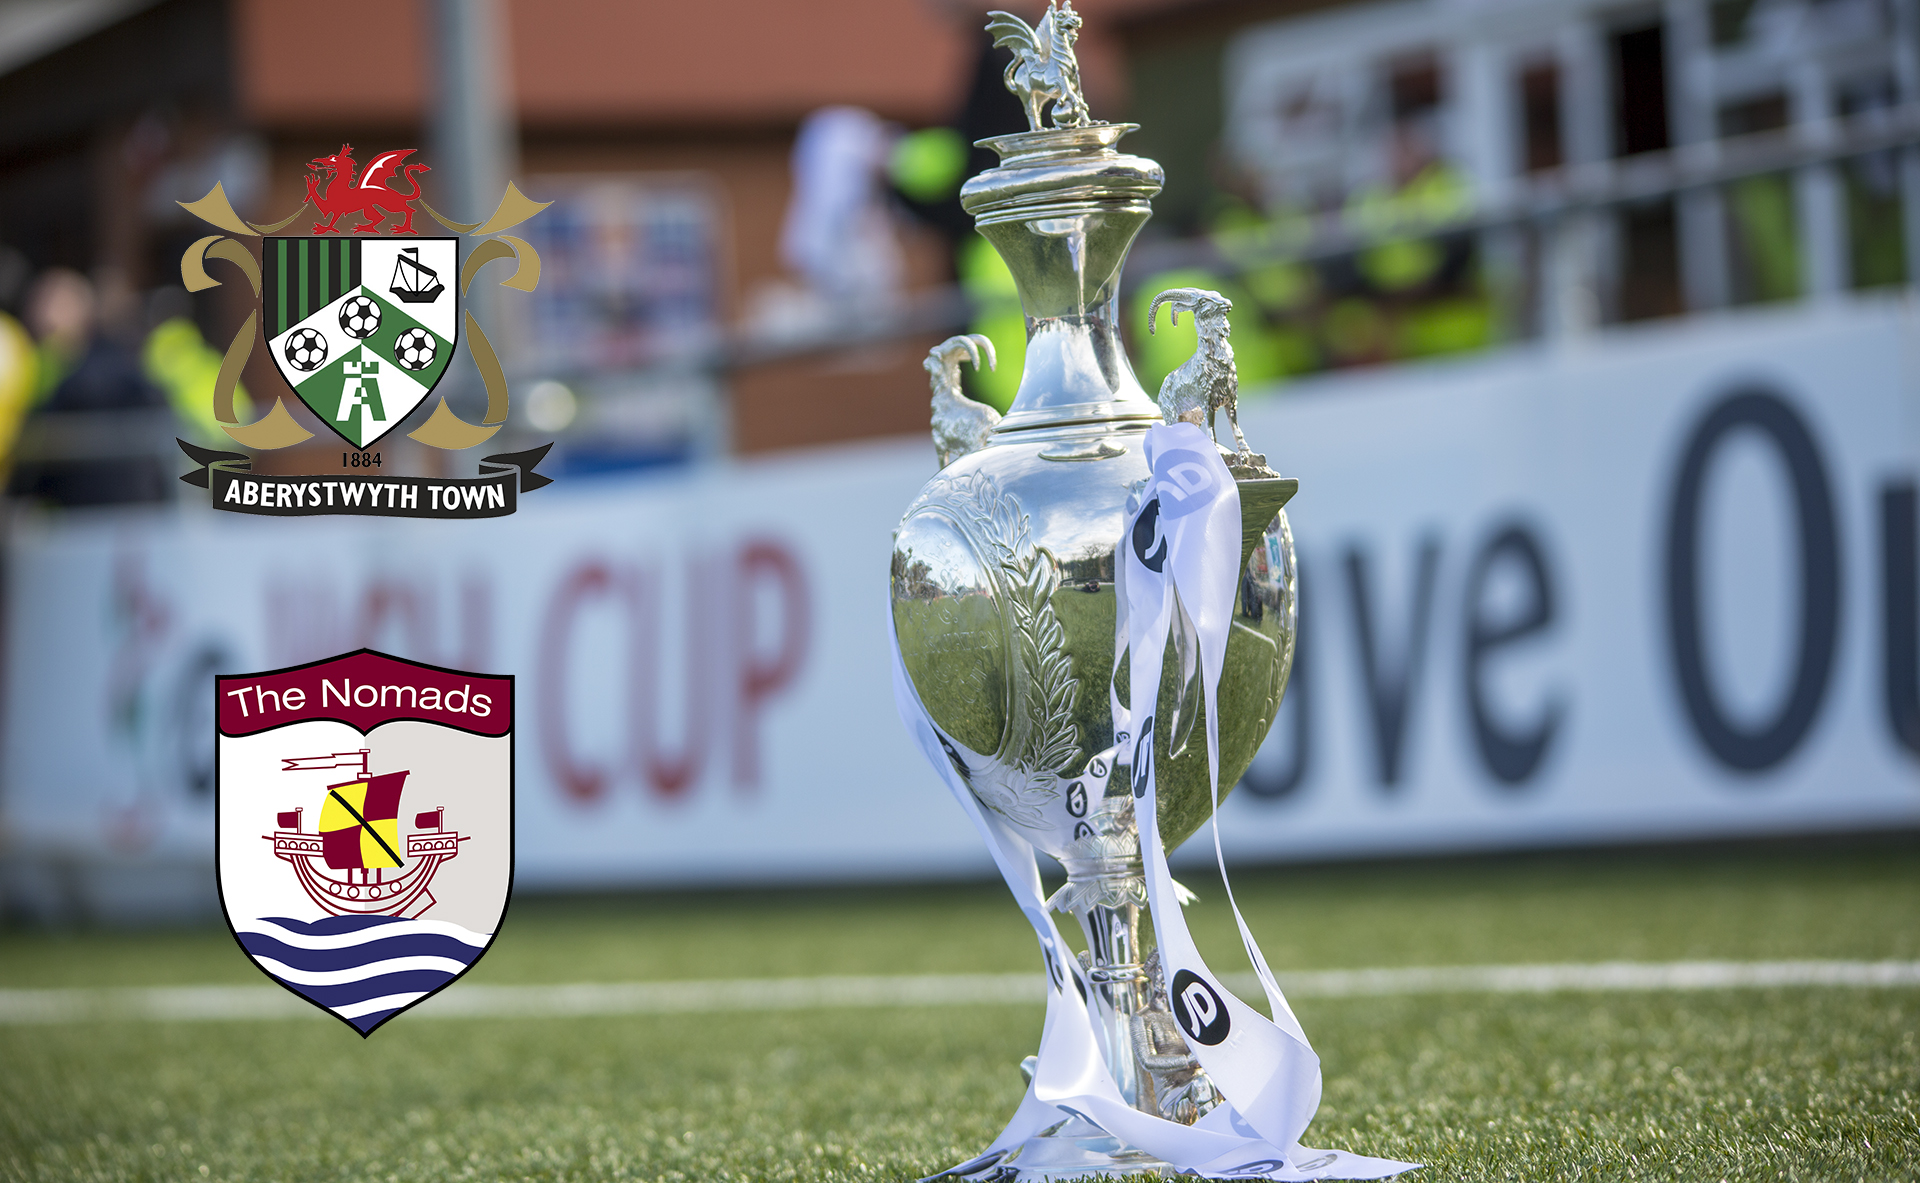 Aberystwyth Town vs Connah's Quay Nomads - JD Welsh Cup Final - Sunday May 6th